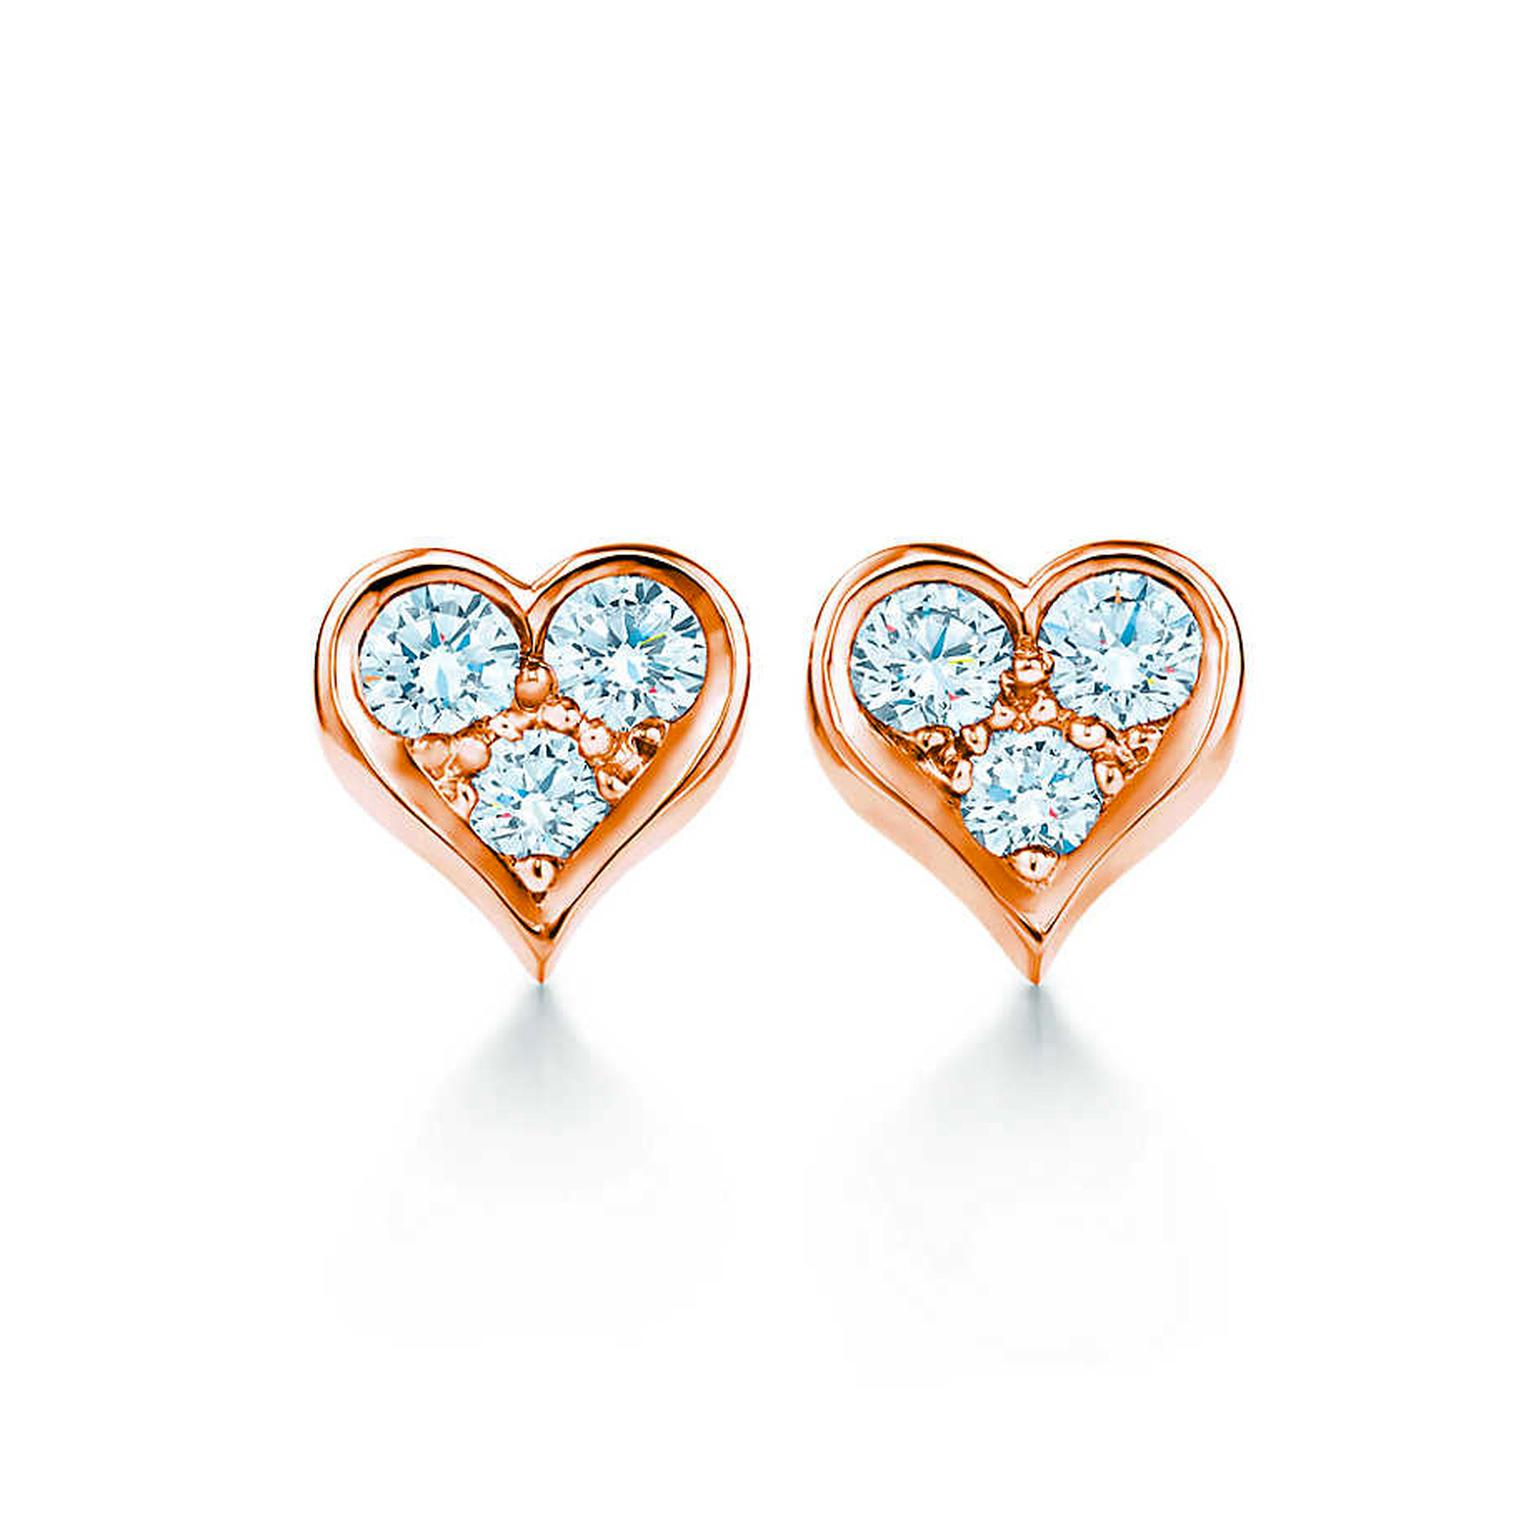 rhsa your shaped stud e p love earrings shine with zirconia arche heart korean